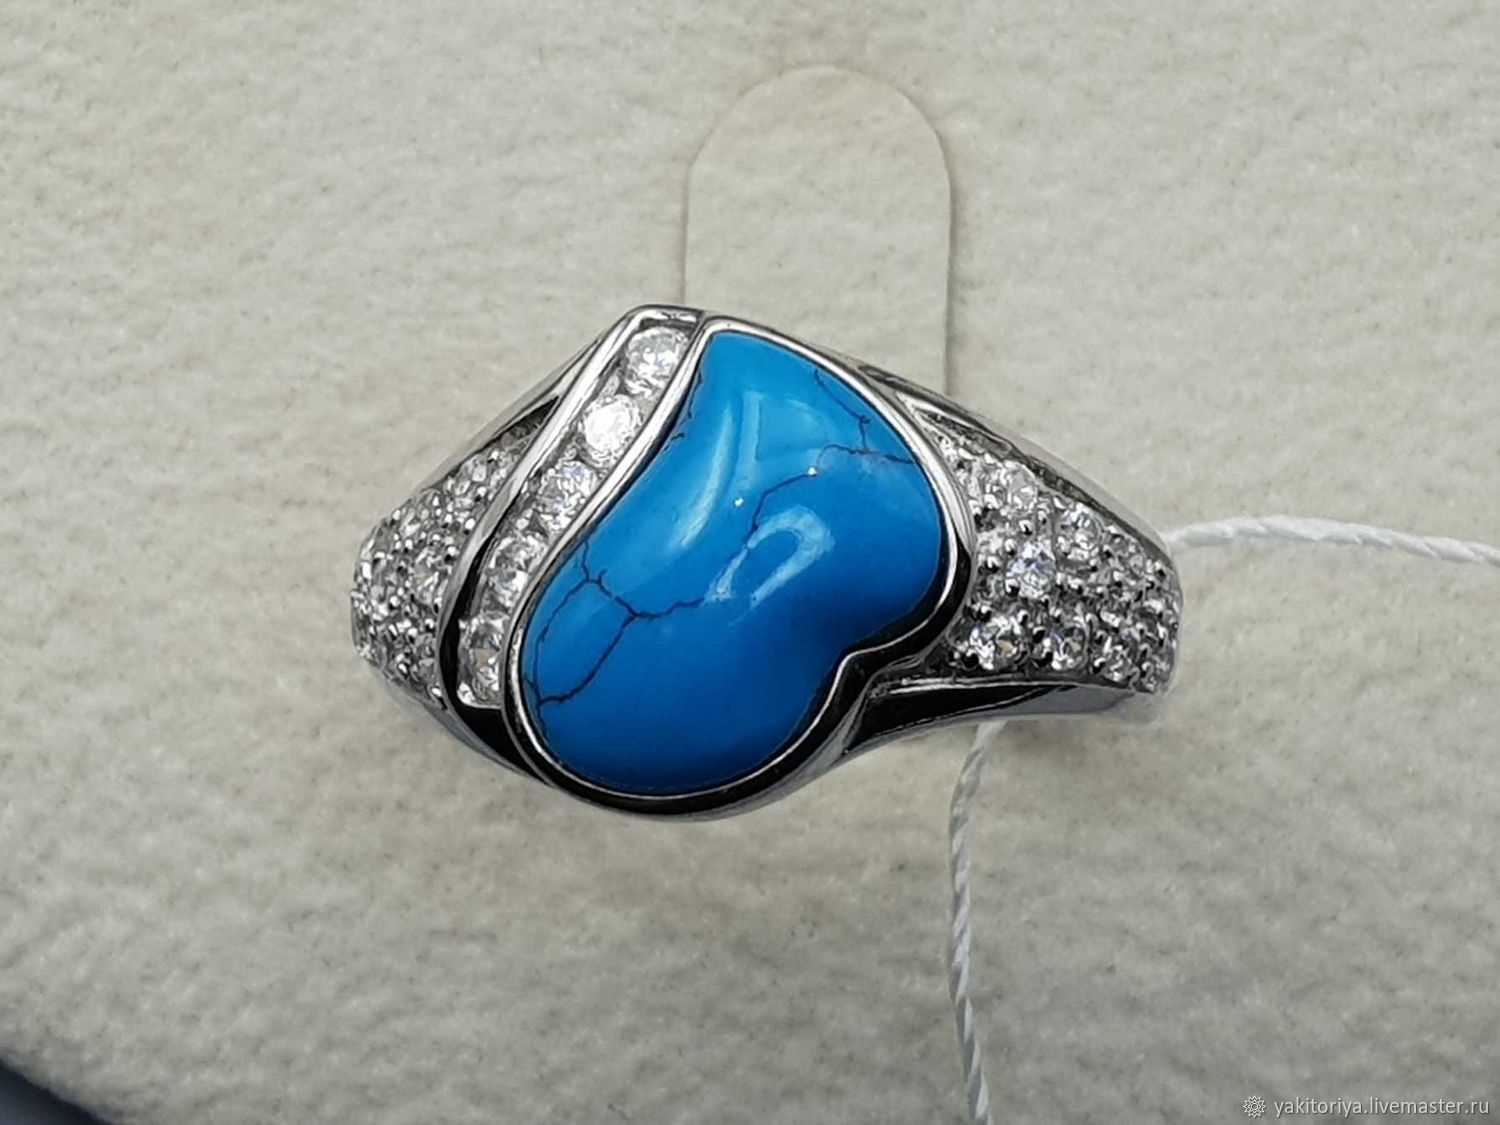 Silver ring with turquoise 12h11 mm and cubic zirconia, Rings, Moscow,  Фото №1